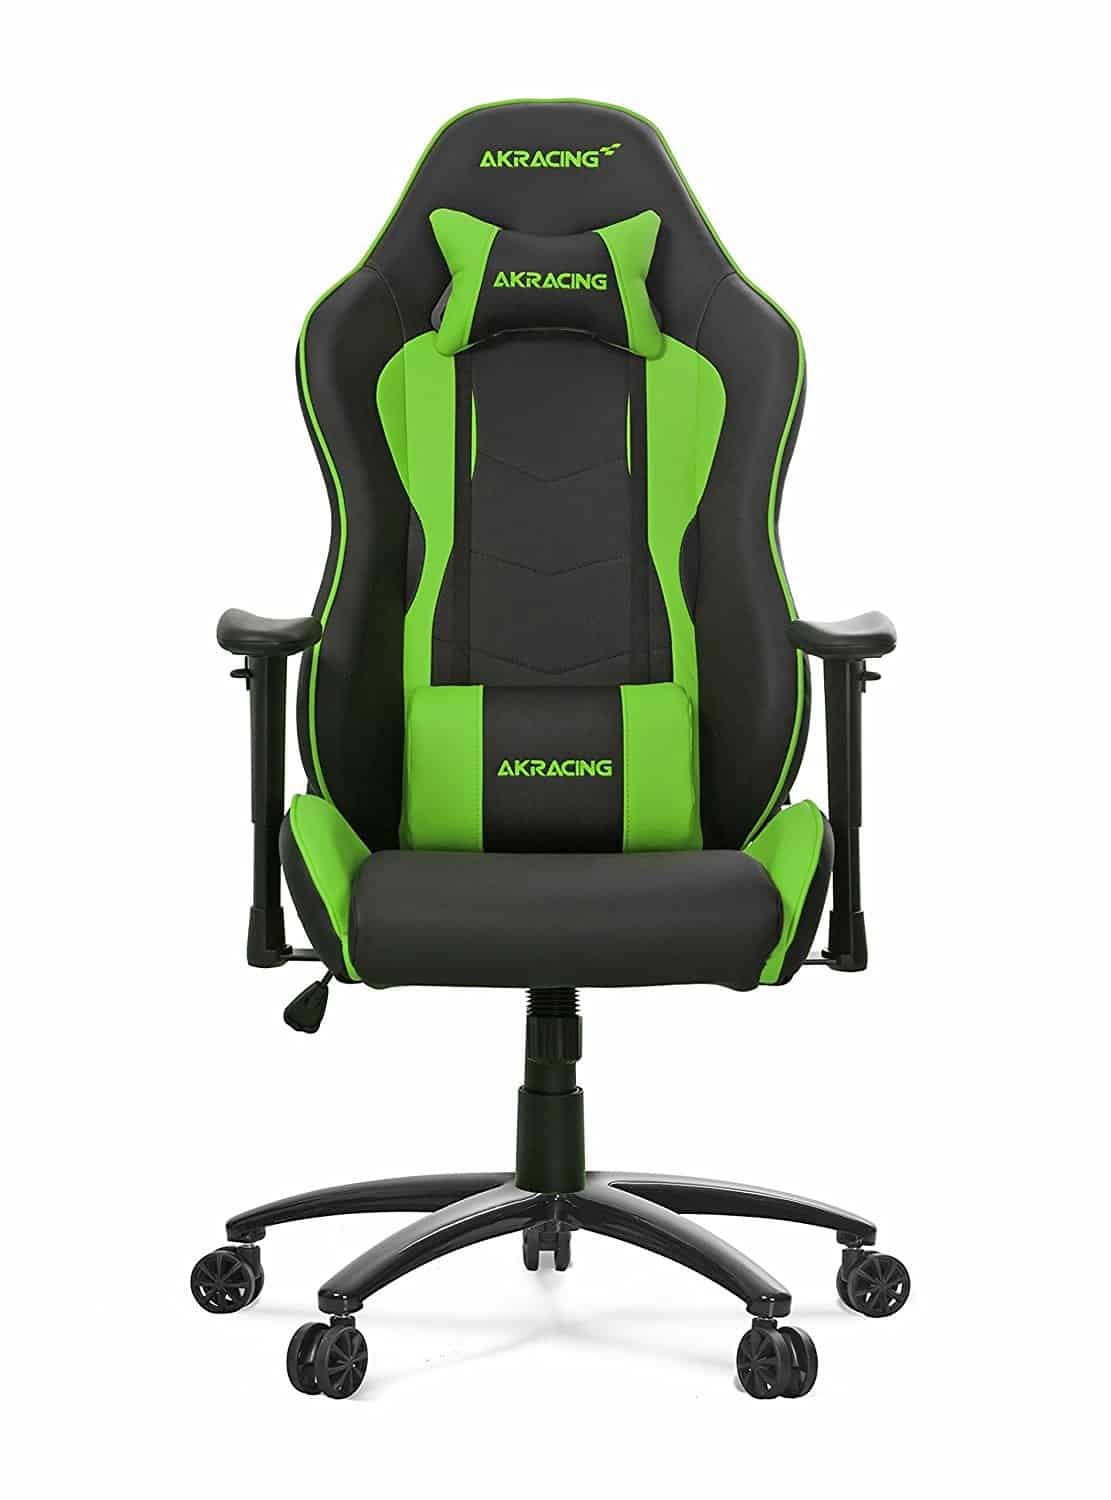 Akracing-AK-5015-Nitro-Gaming-Chair